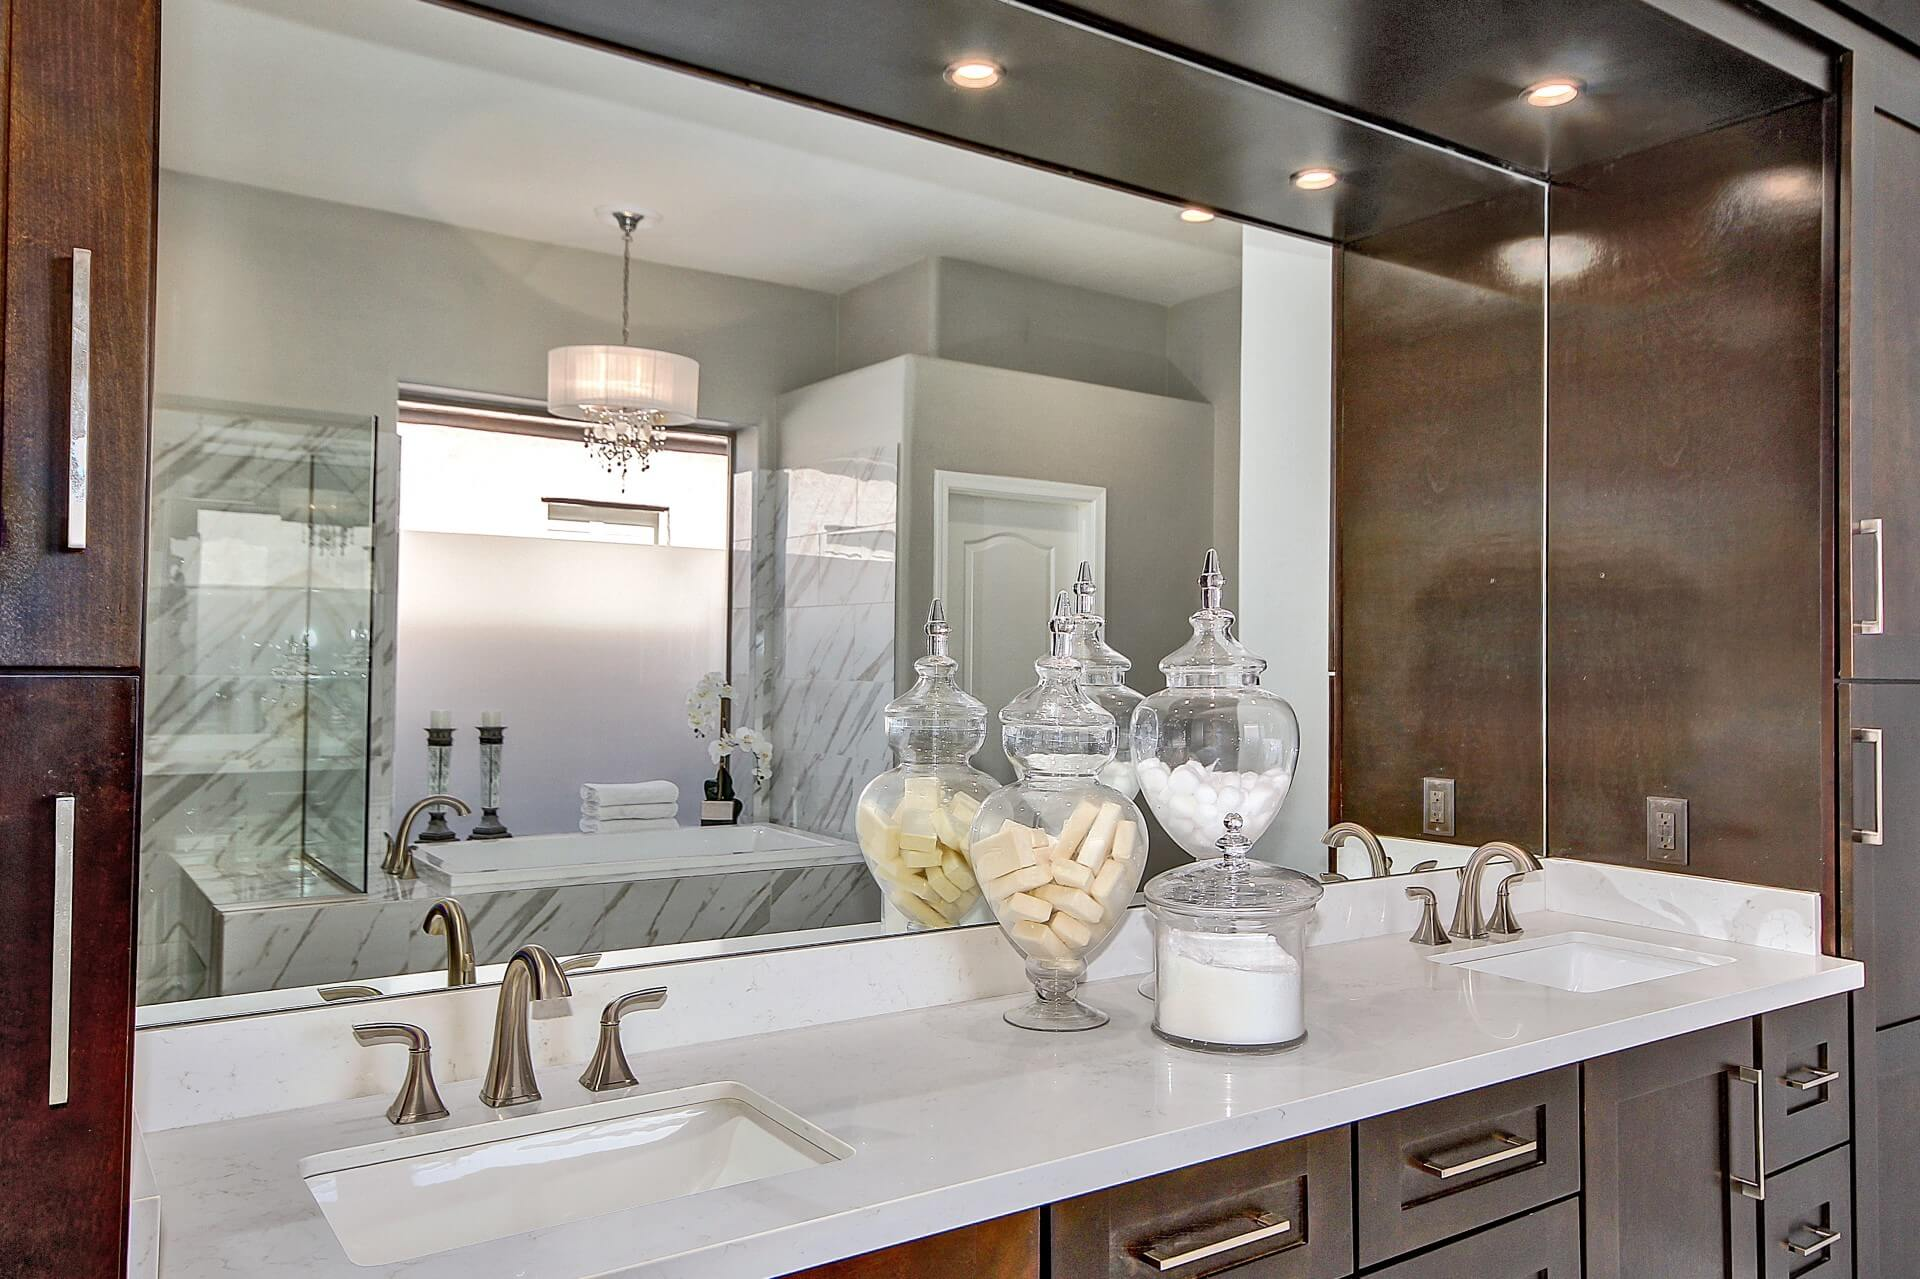 Bathroom Cabinets, Countertops and Vanities in Scottsdale AZ